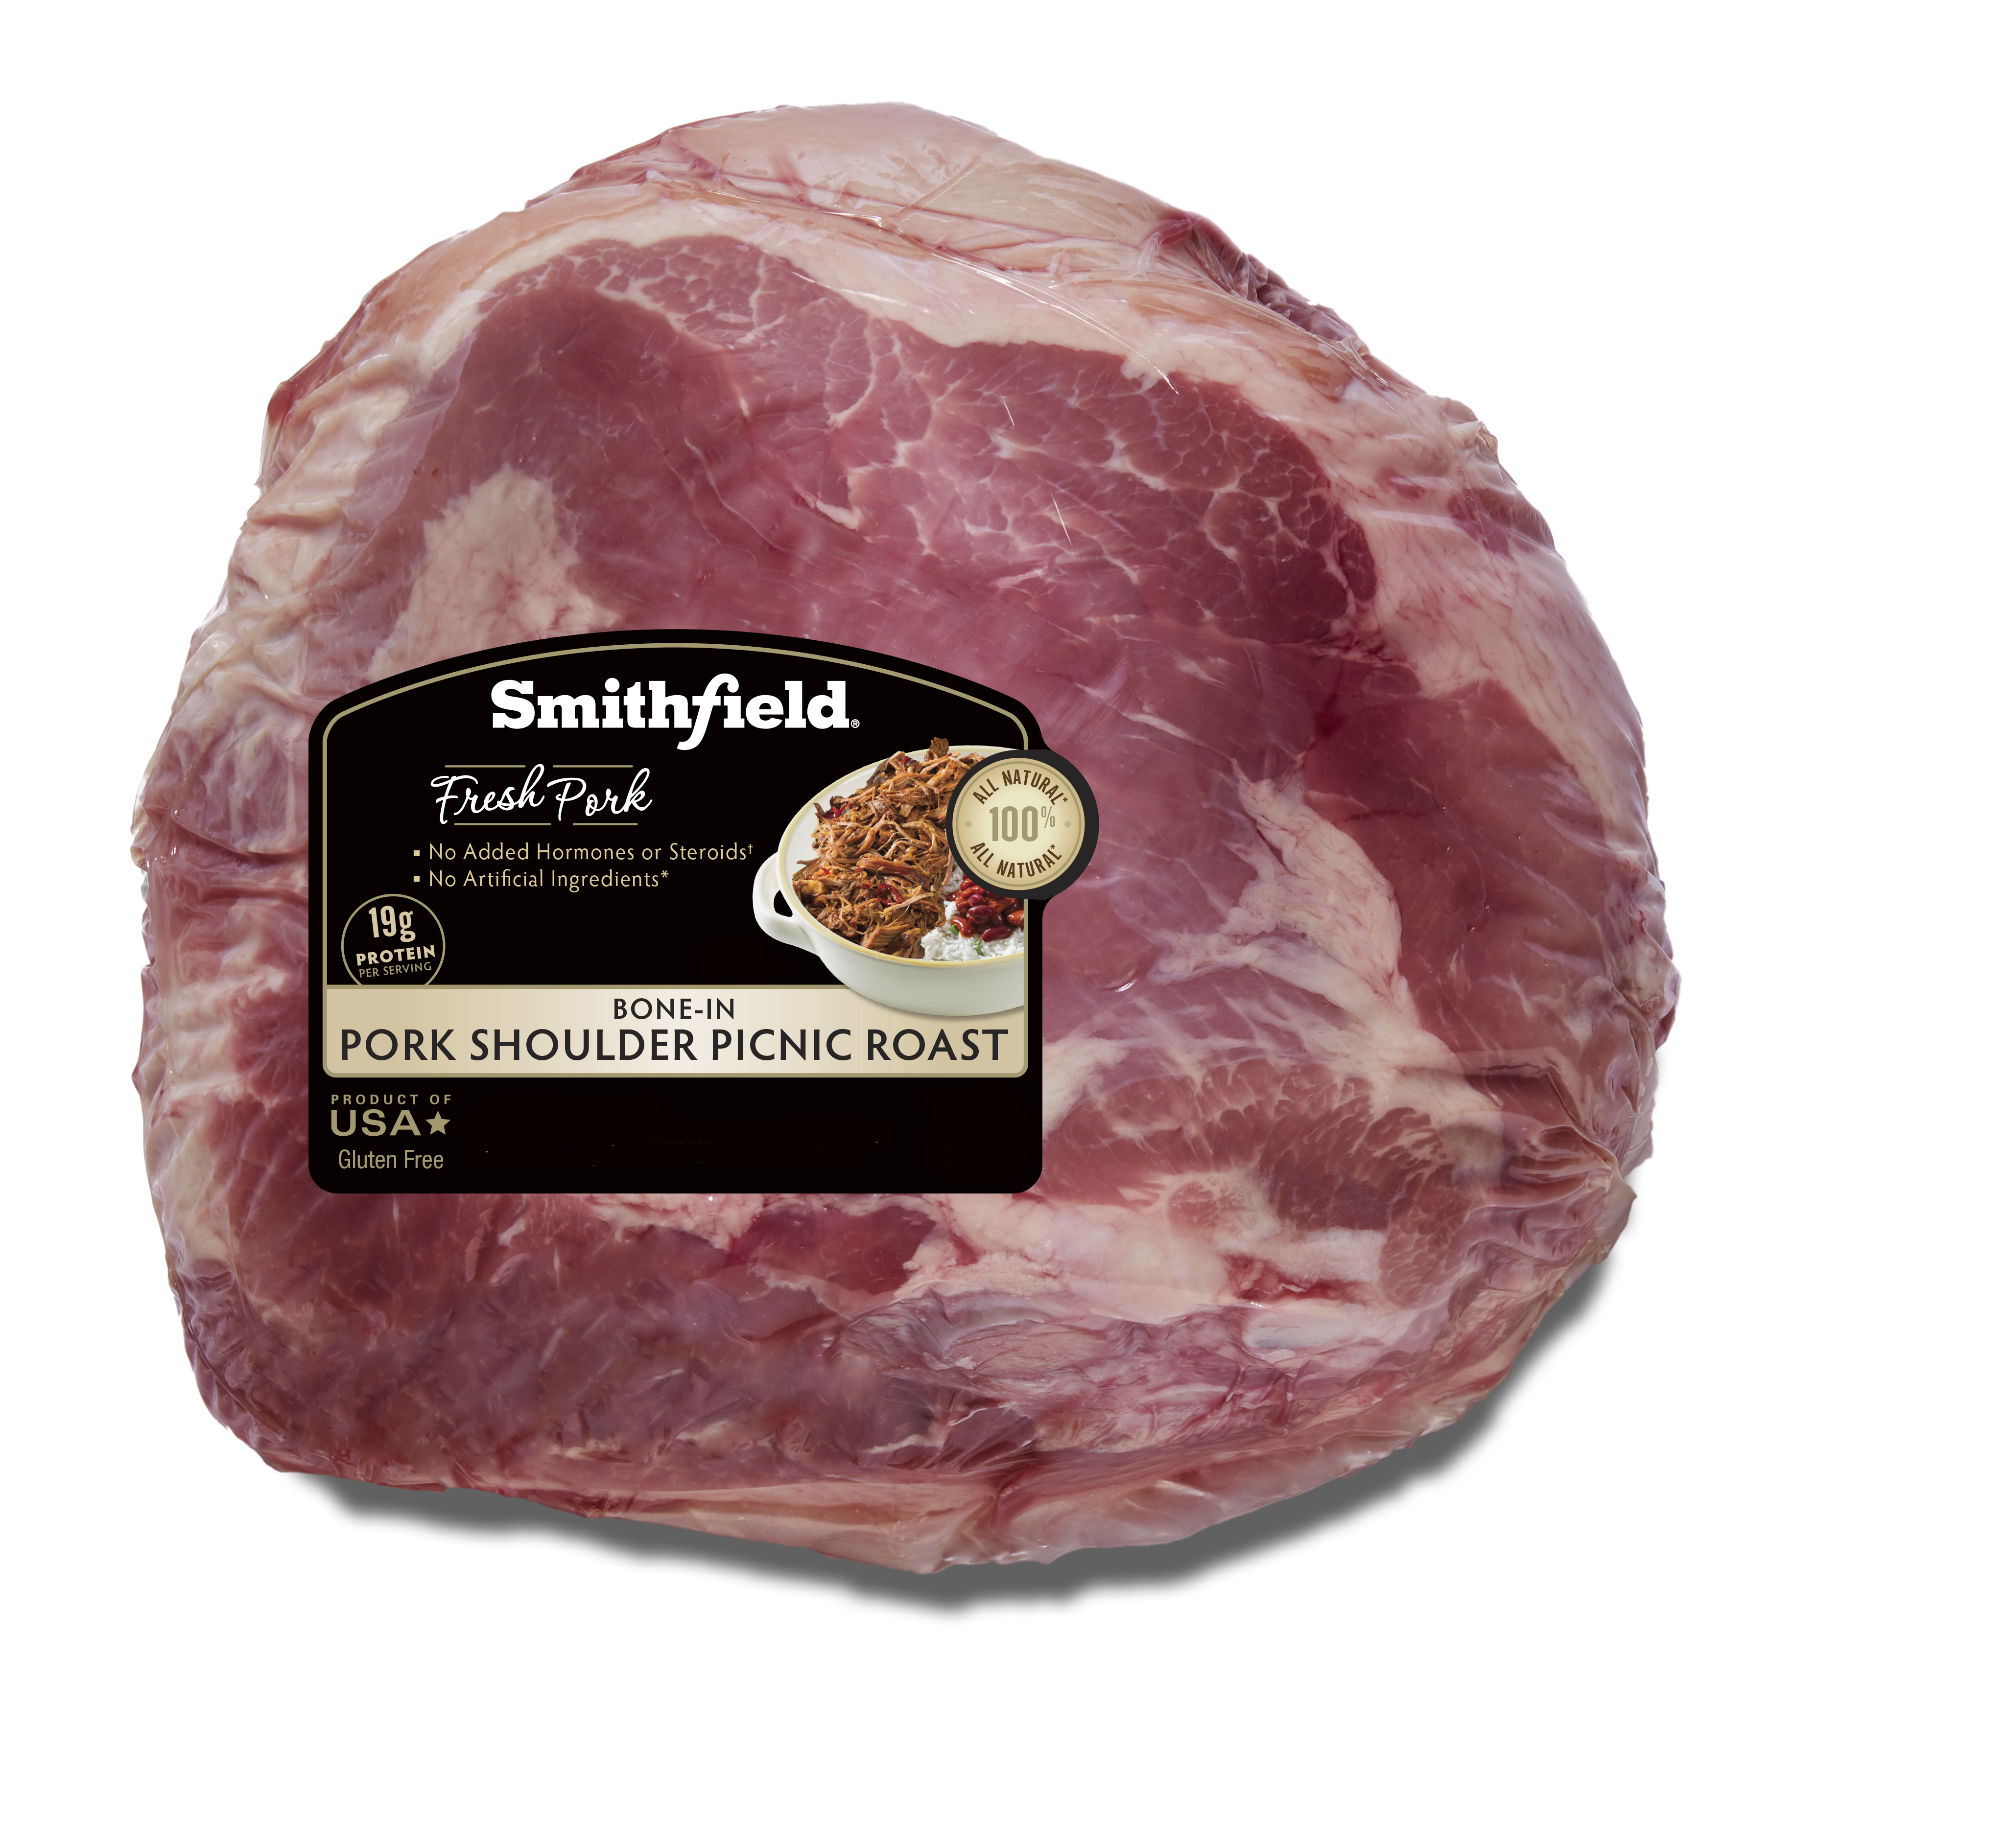 Smithfield Fresh Pork Shoulder Picnic Roast, Bone In, Half, No Artificial Ingredients, Ready to Cook, 6 - 6.5 lbs